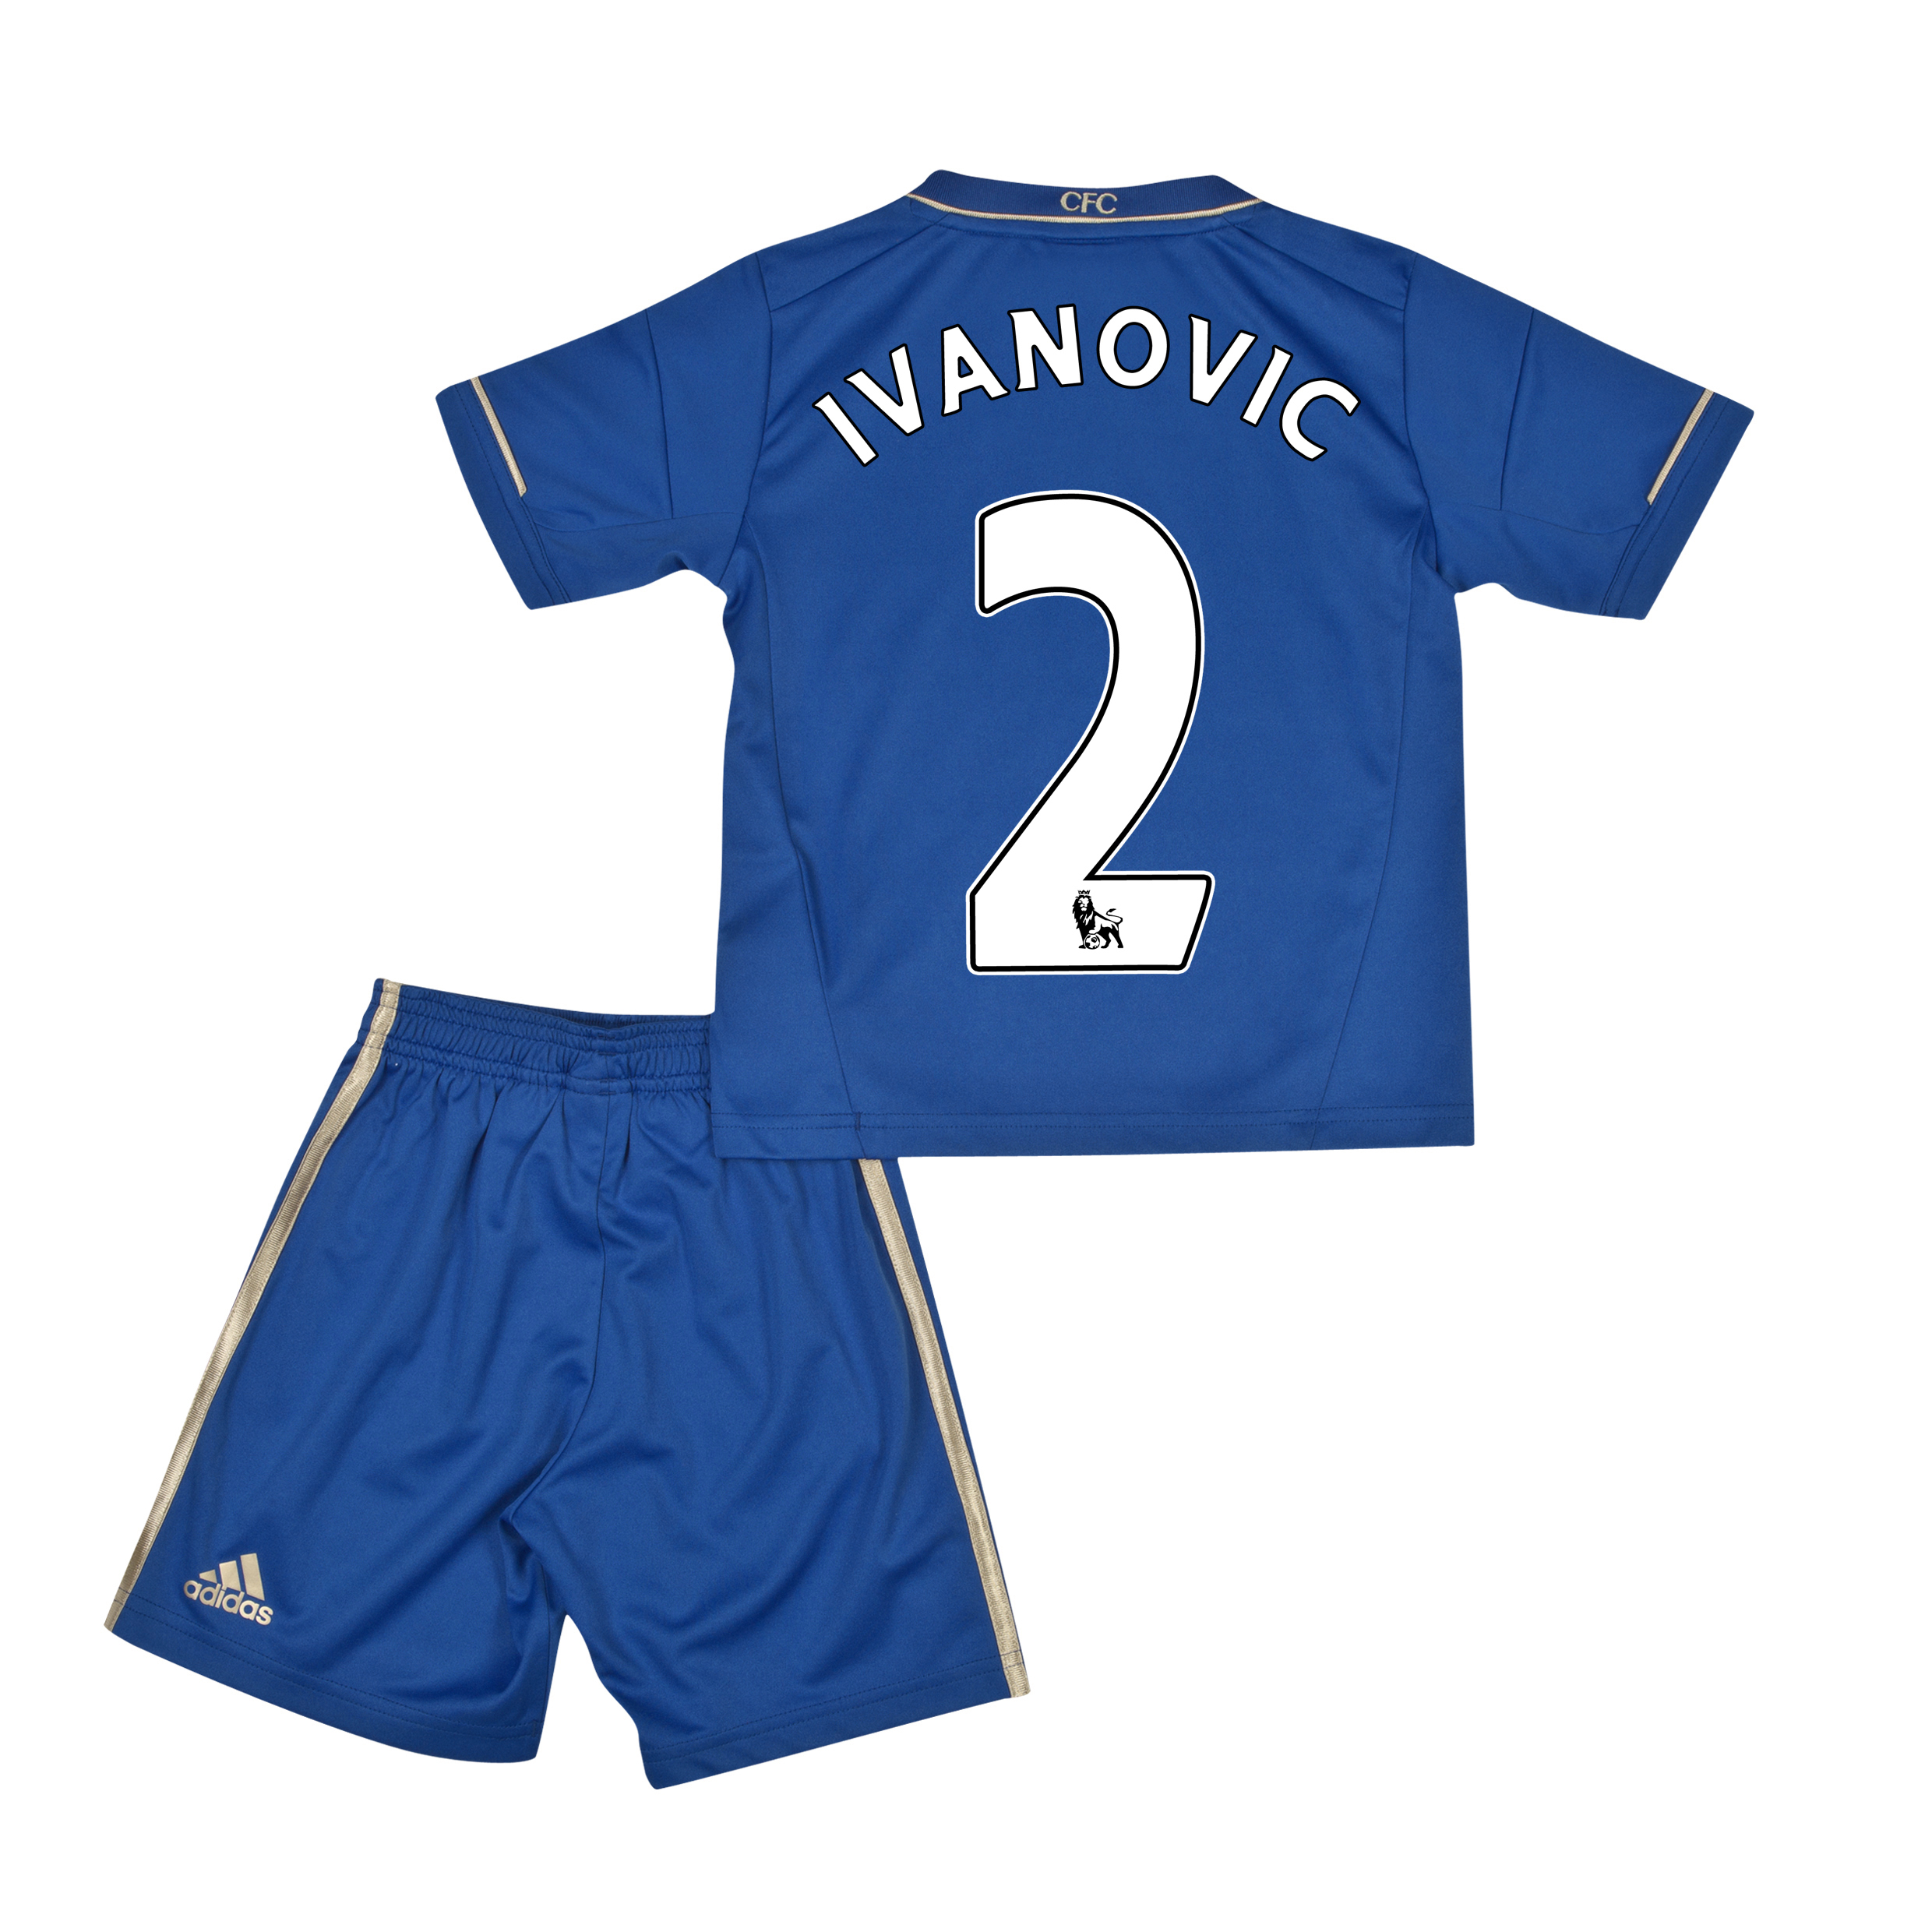 Chelsea Home Mini Kit 2012/13 with Ivanovic 2 printing